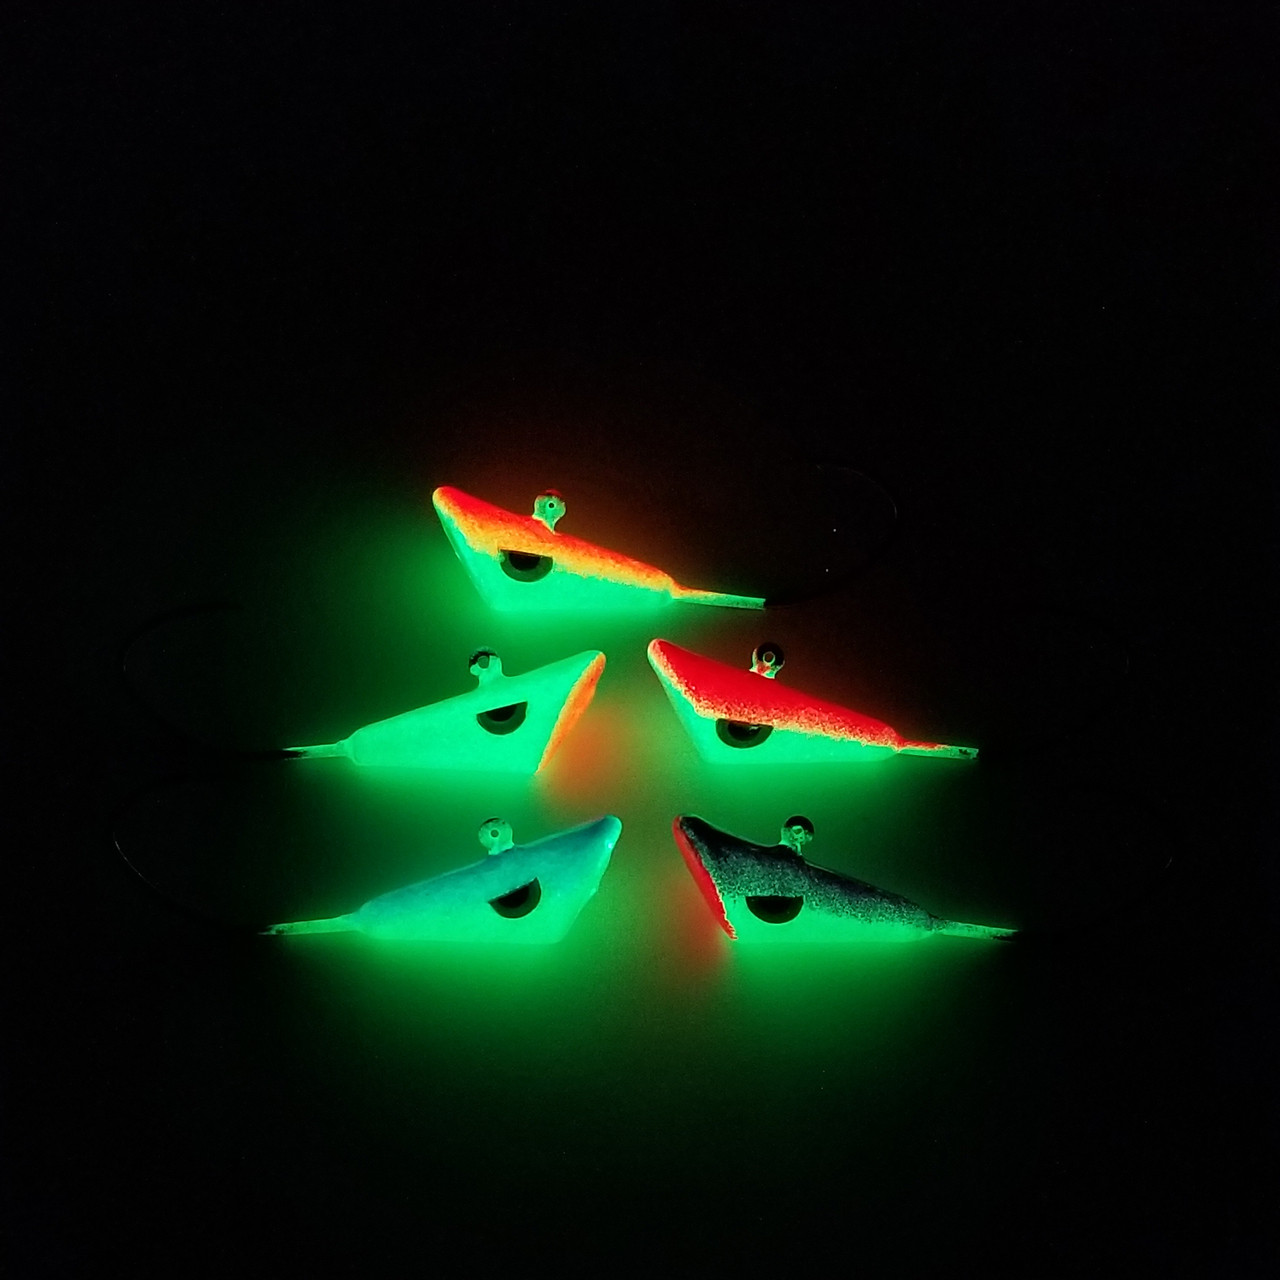 """These are Poured on s EAGLE CLAW """" LITTLE NASTY HOOK """" 3/0 BLACK NICKLE , it is painted with our Very own KRYTPONITE GLOW powder Paint, as well has a Mean EYES !!!!     These are Great for Walleye, Pike and Ling Cod .  Tip you hook with your Favourite Bait ( Nite Crawlers, Leaches, Minnows )"""